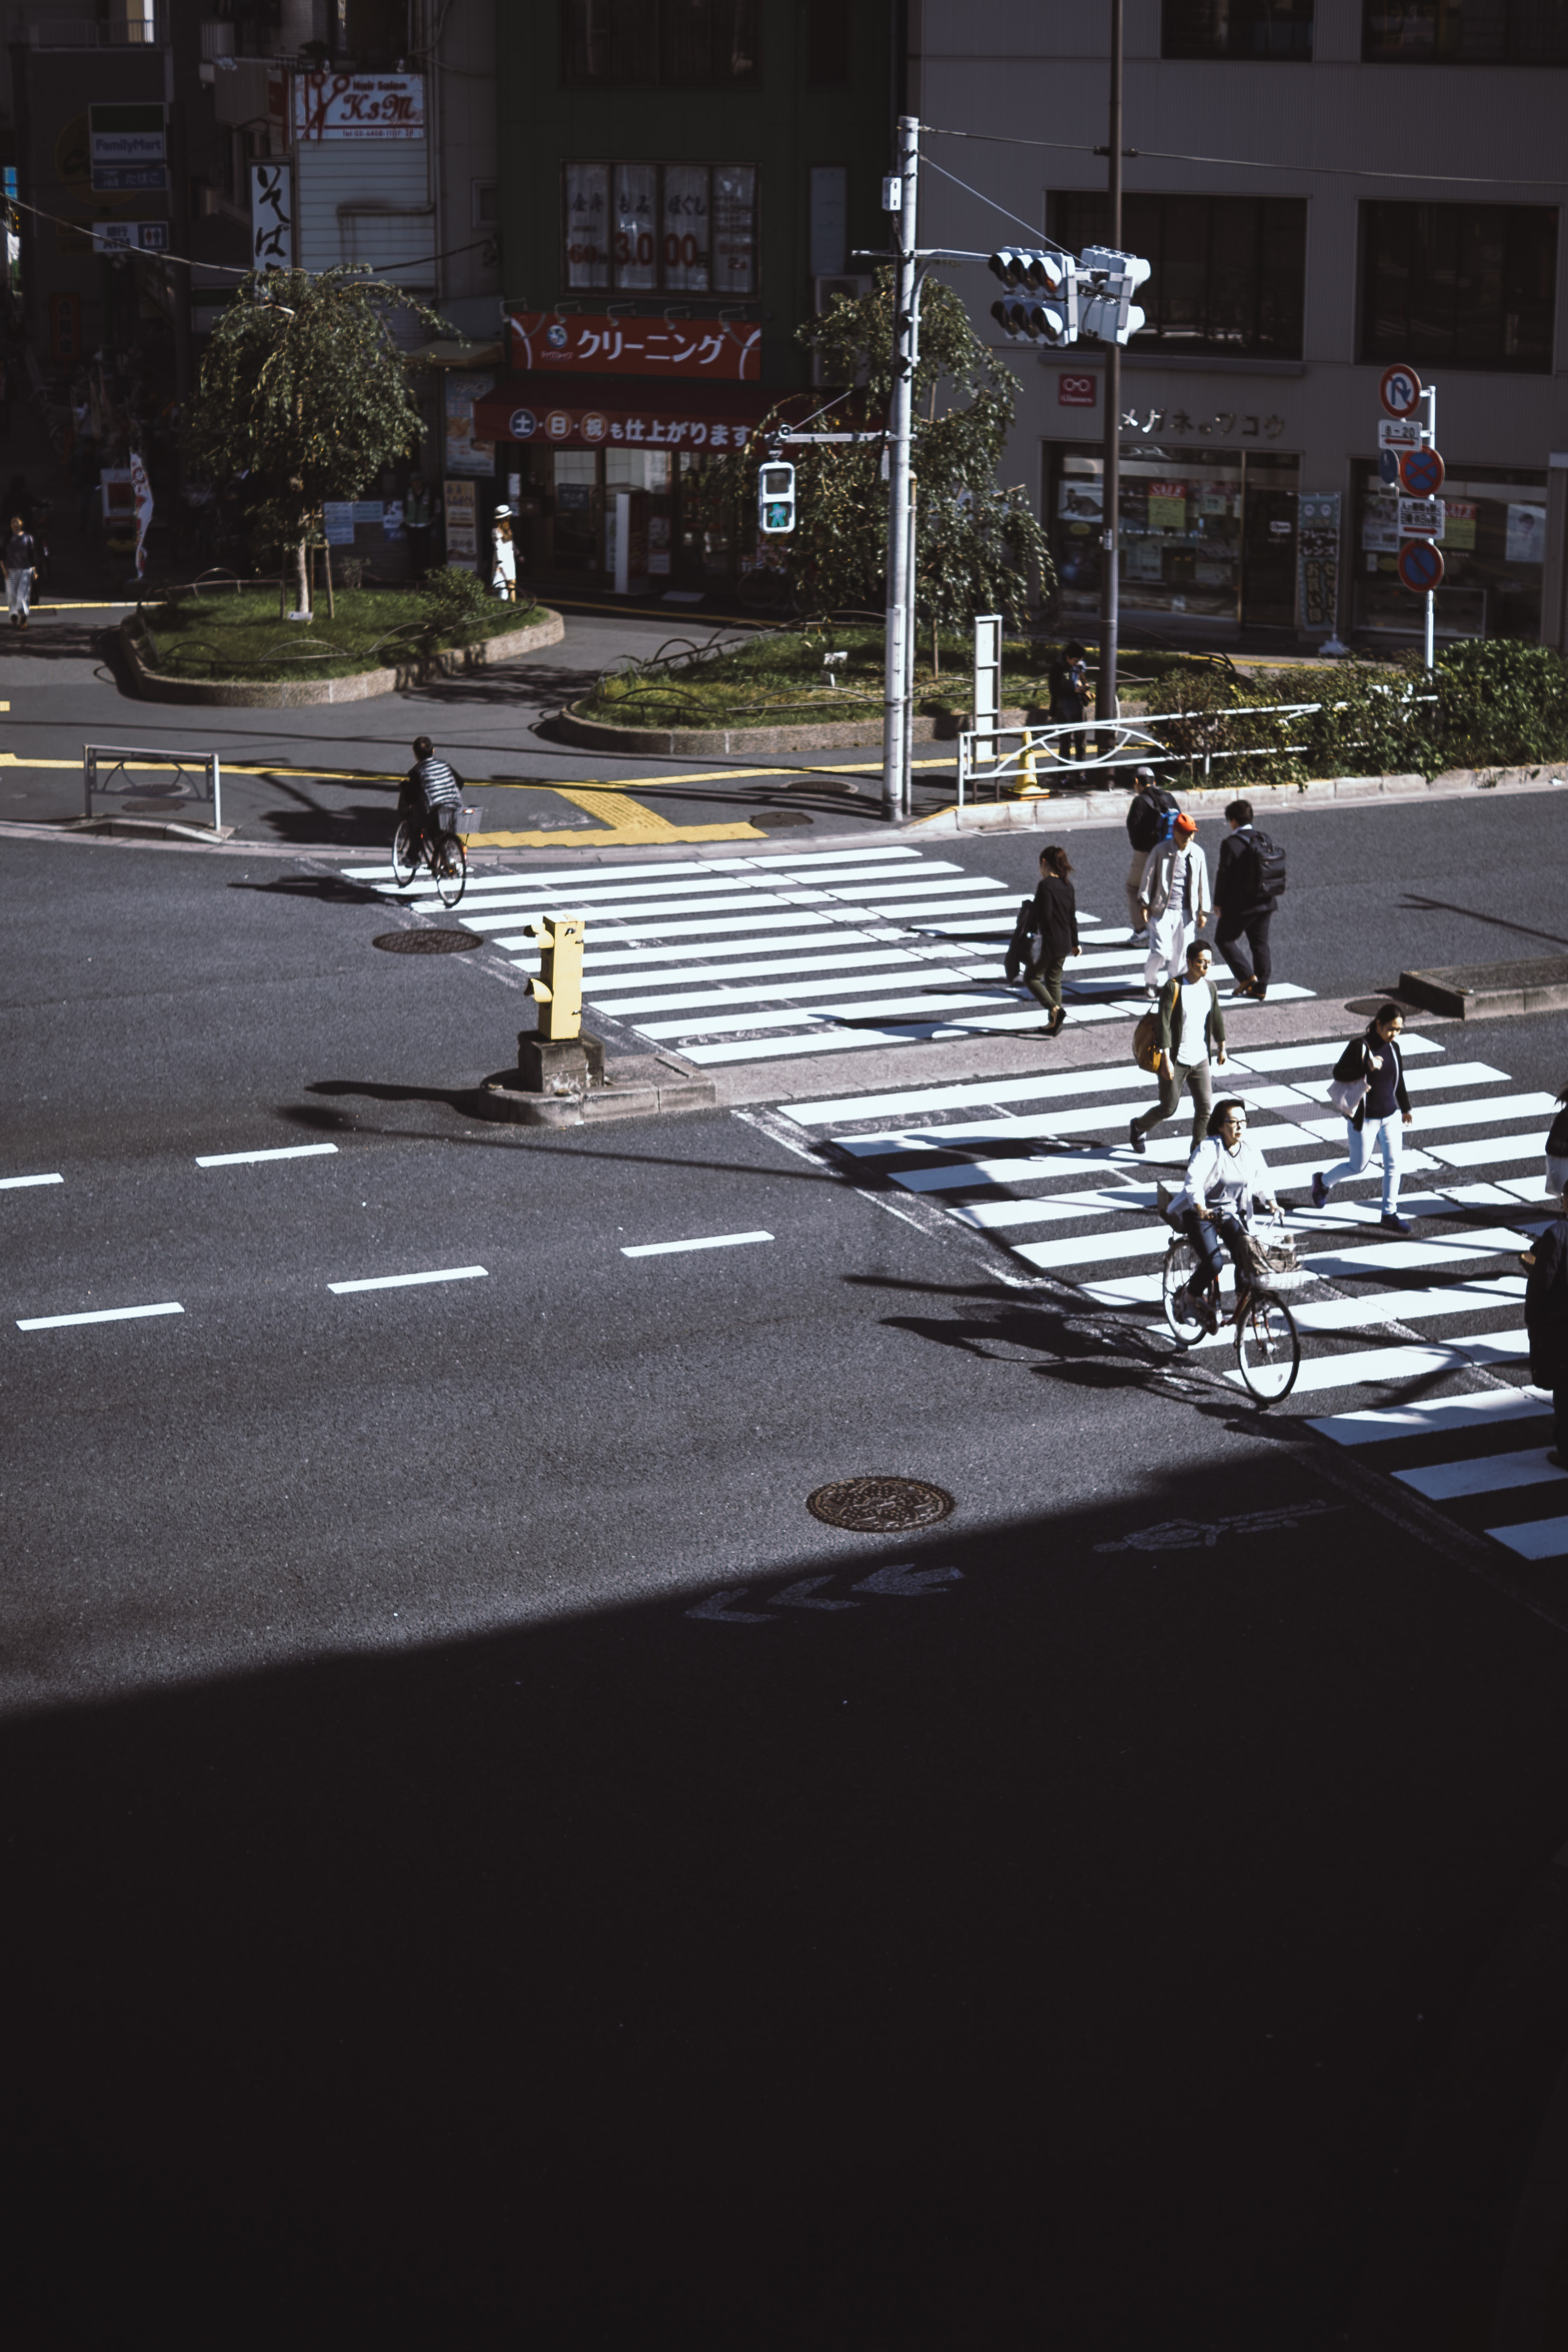 People walking and riding bicycles through a pedestrian crosswalk in Taito